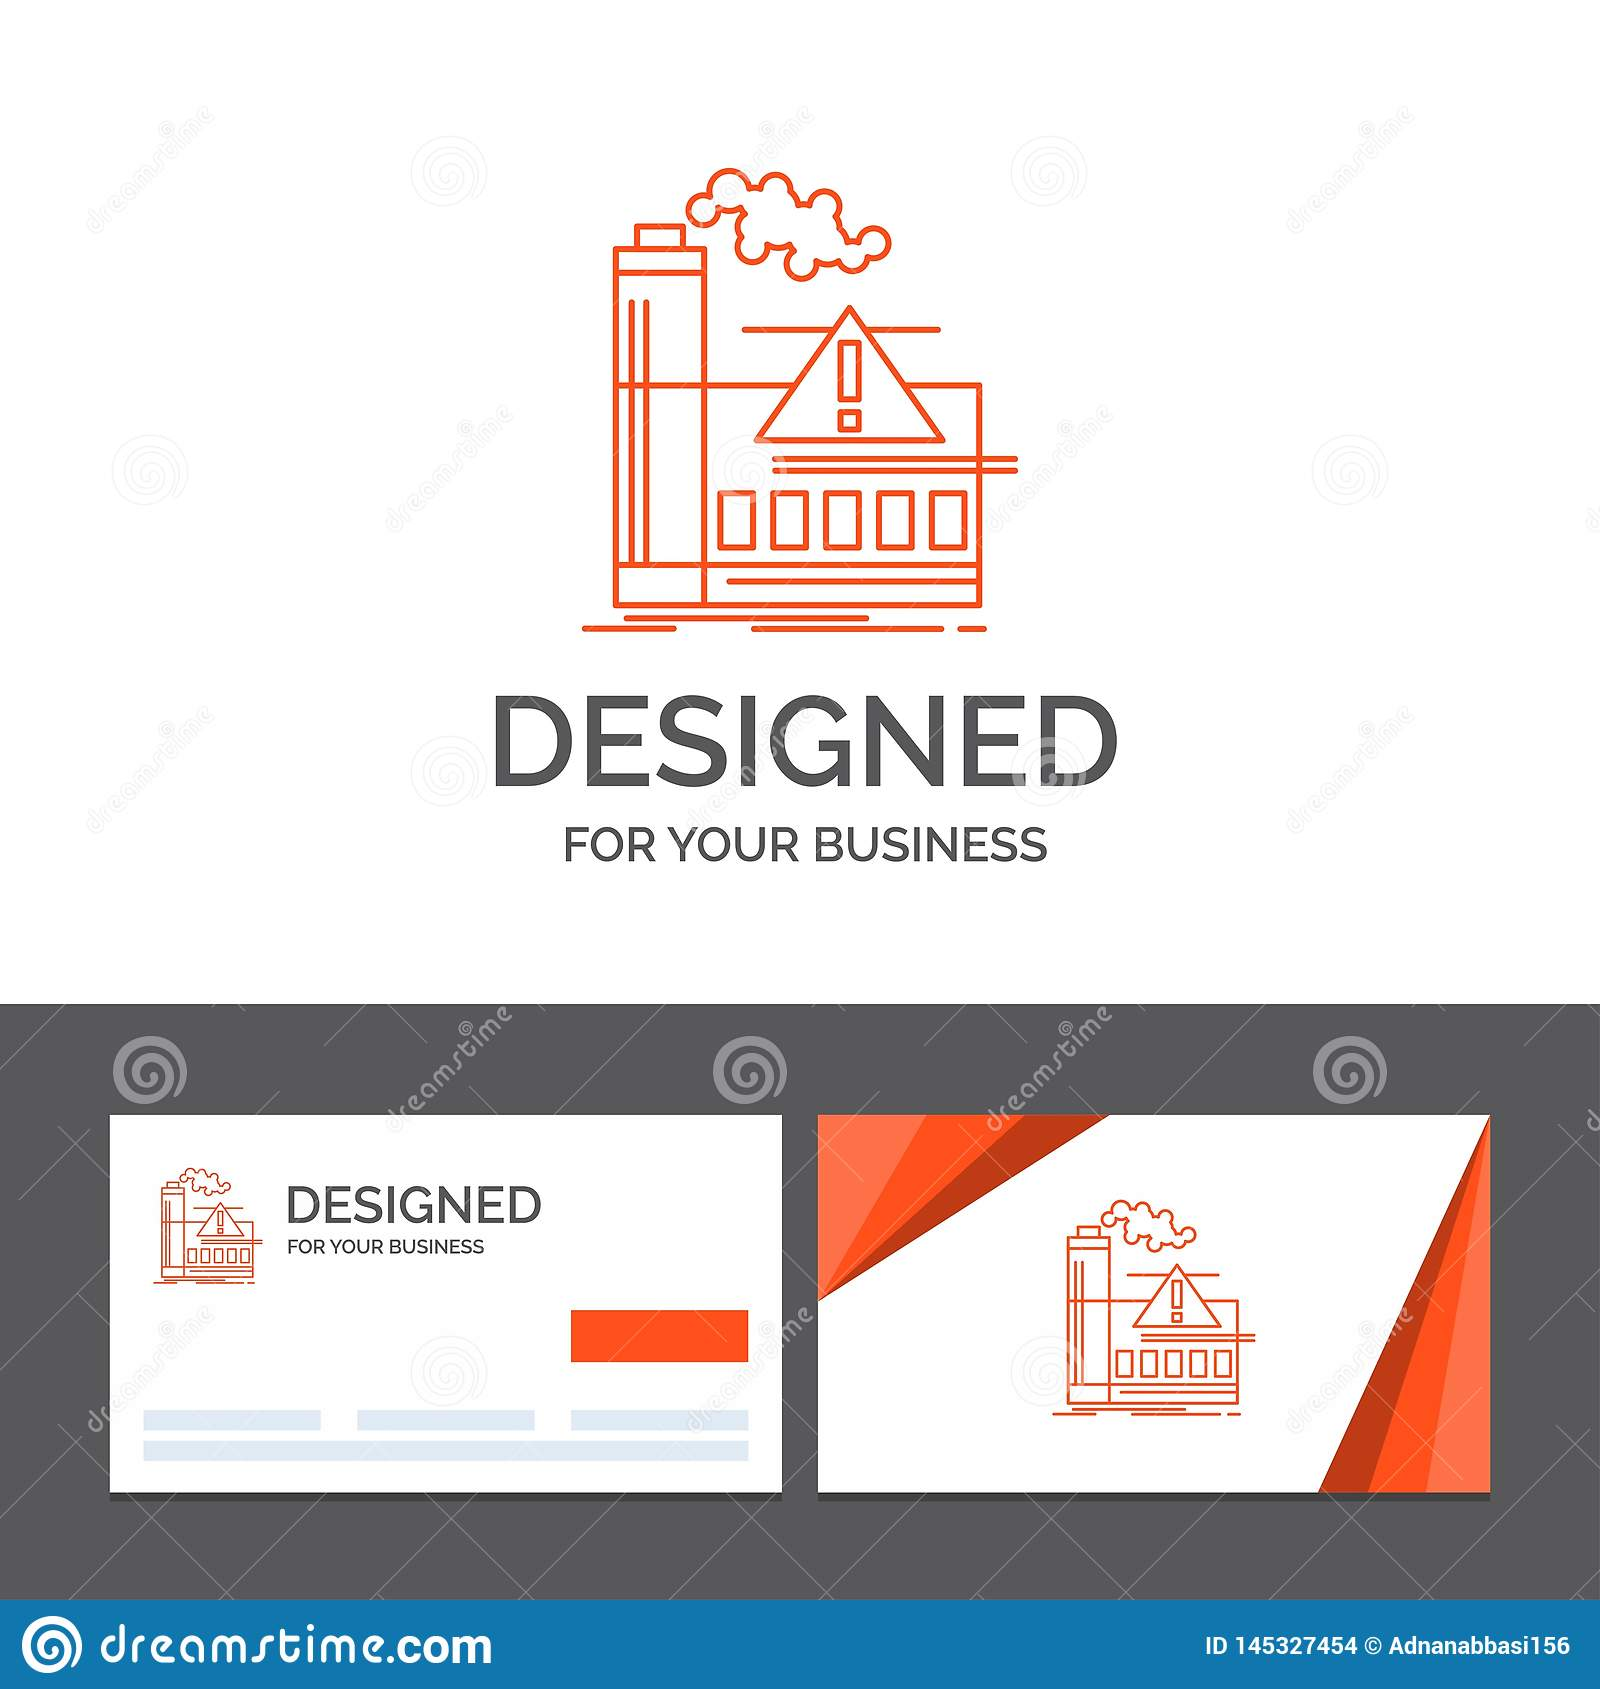 Business logo template for pollution, Factory, Air, Alert, industry. Orange Visiting Cards with Brand logo template